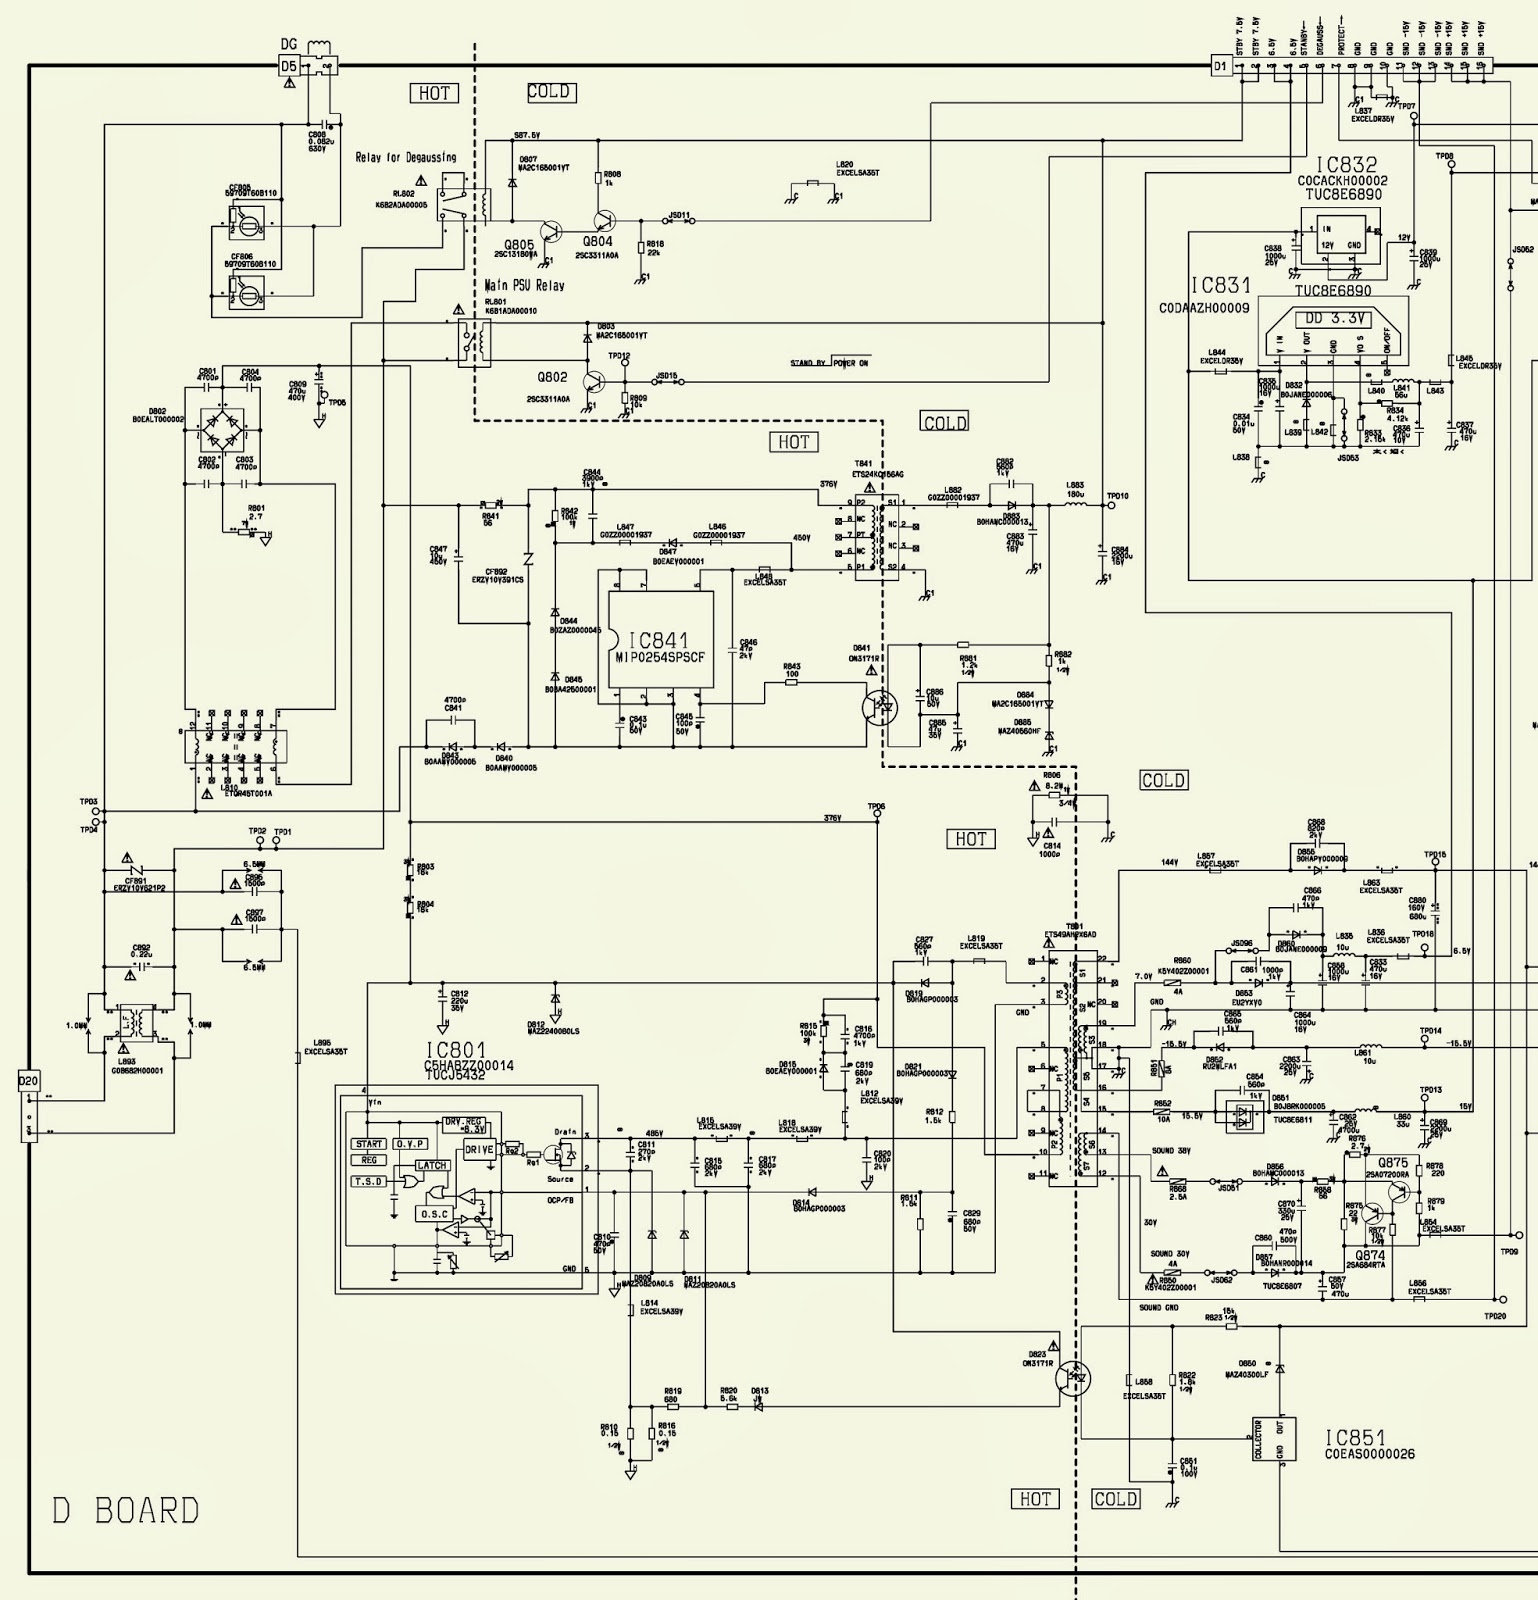 Panasonic Schematic Diagram Trusted Wiring Online Jvc K Series Circuit Diagrams Best Home Tx 32pd30 36pd30 Power